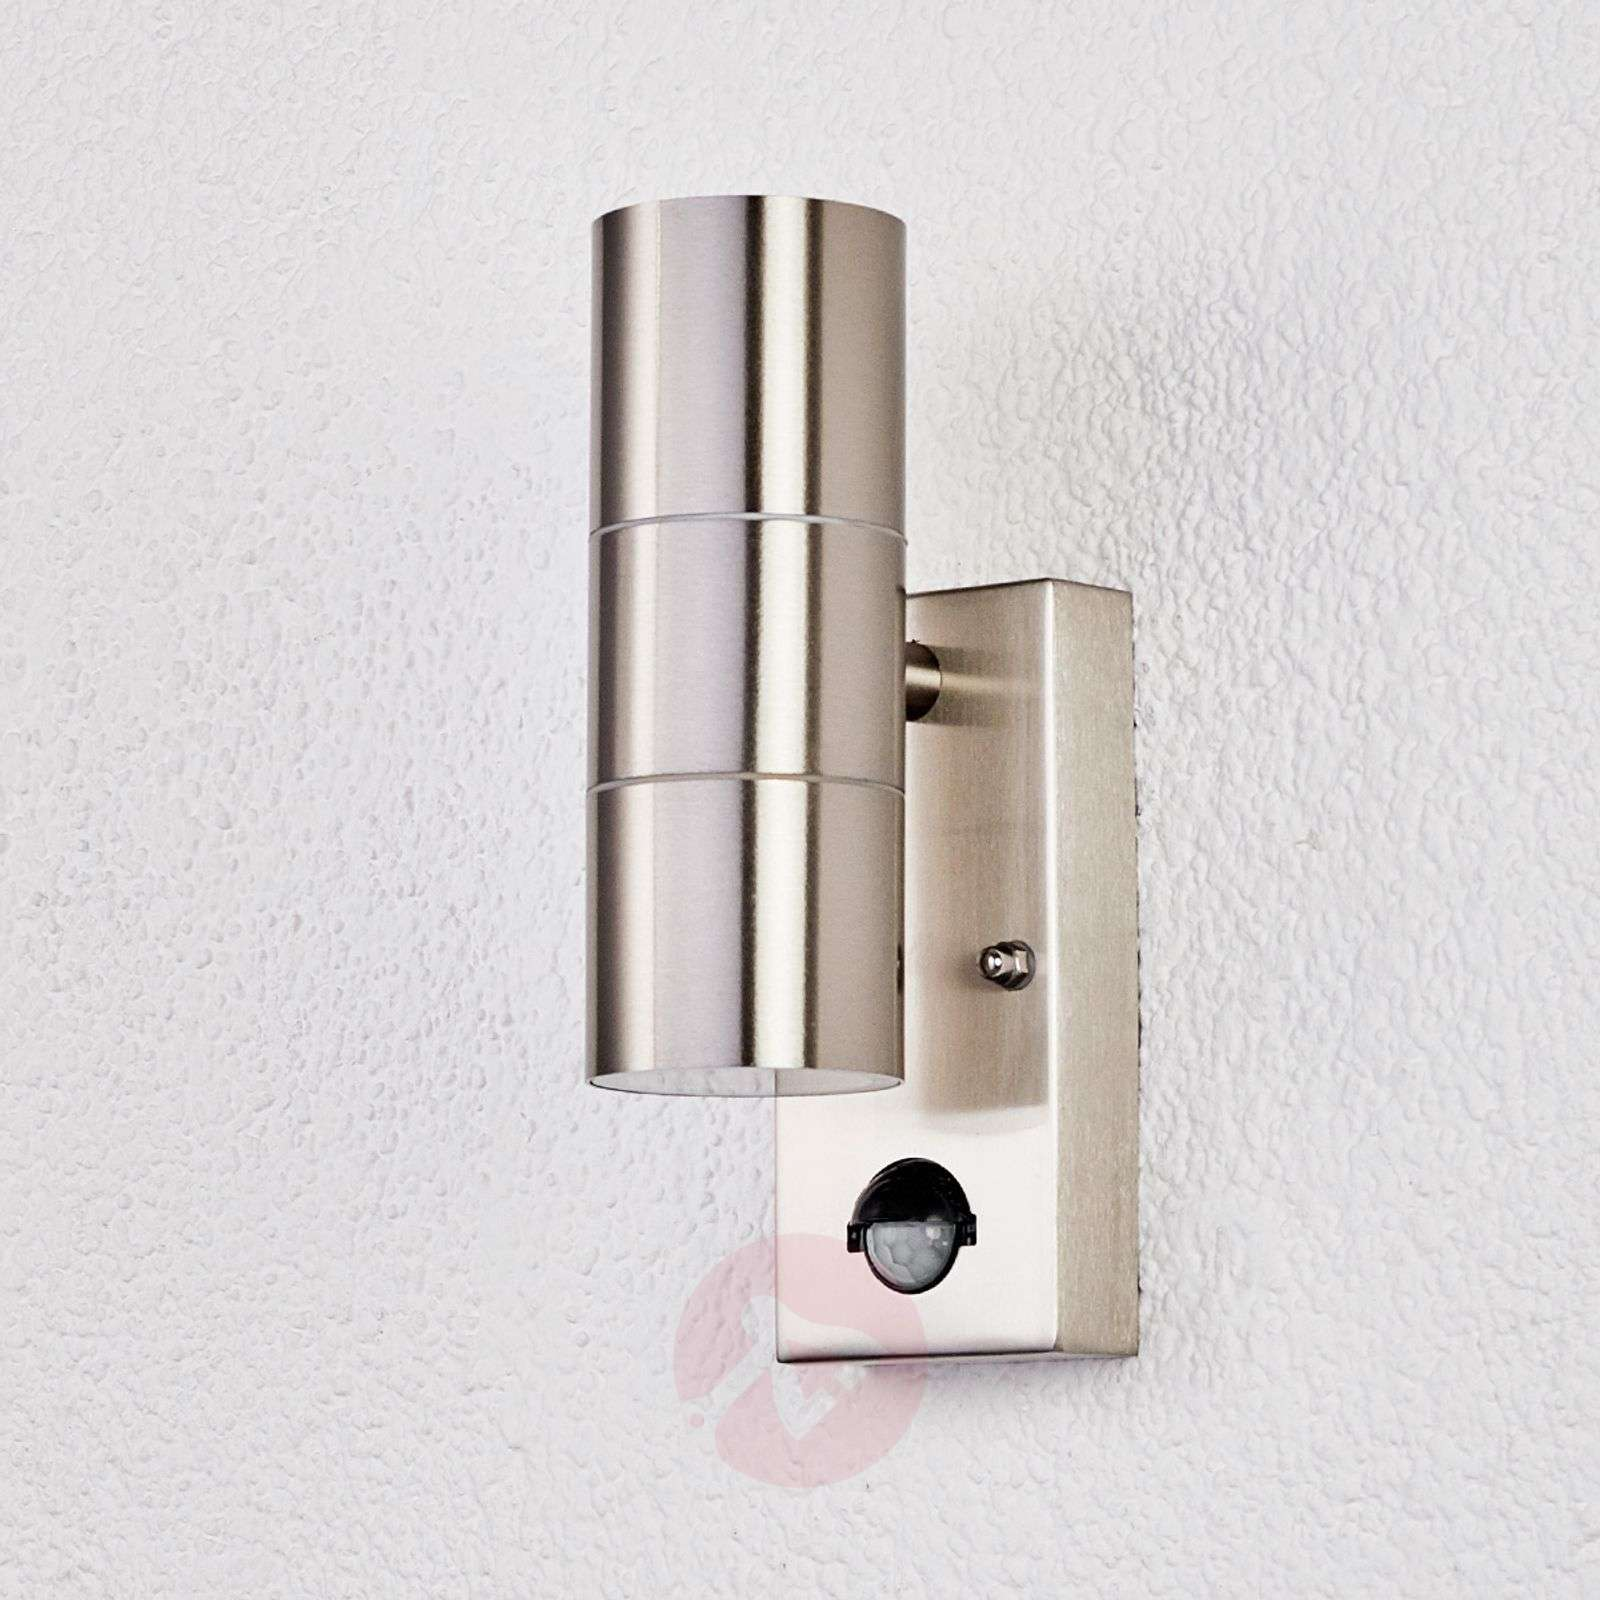 Outdoor wall light Eyrin with motion detector-9647040-01